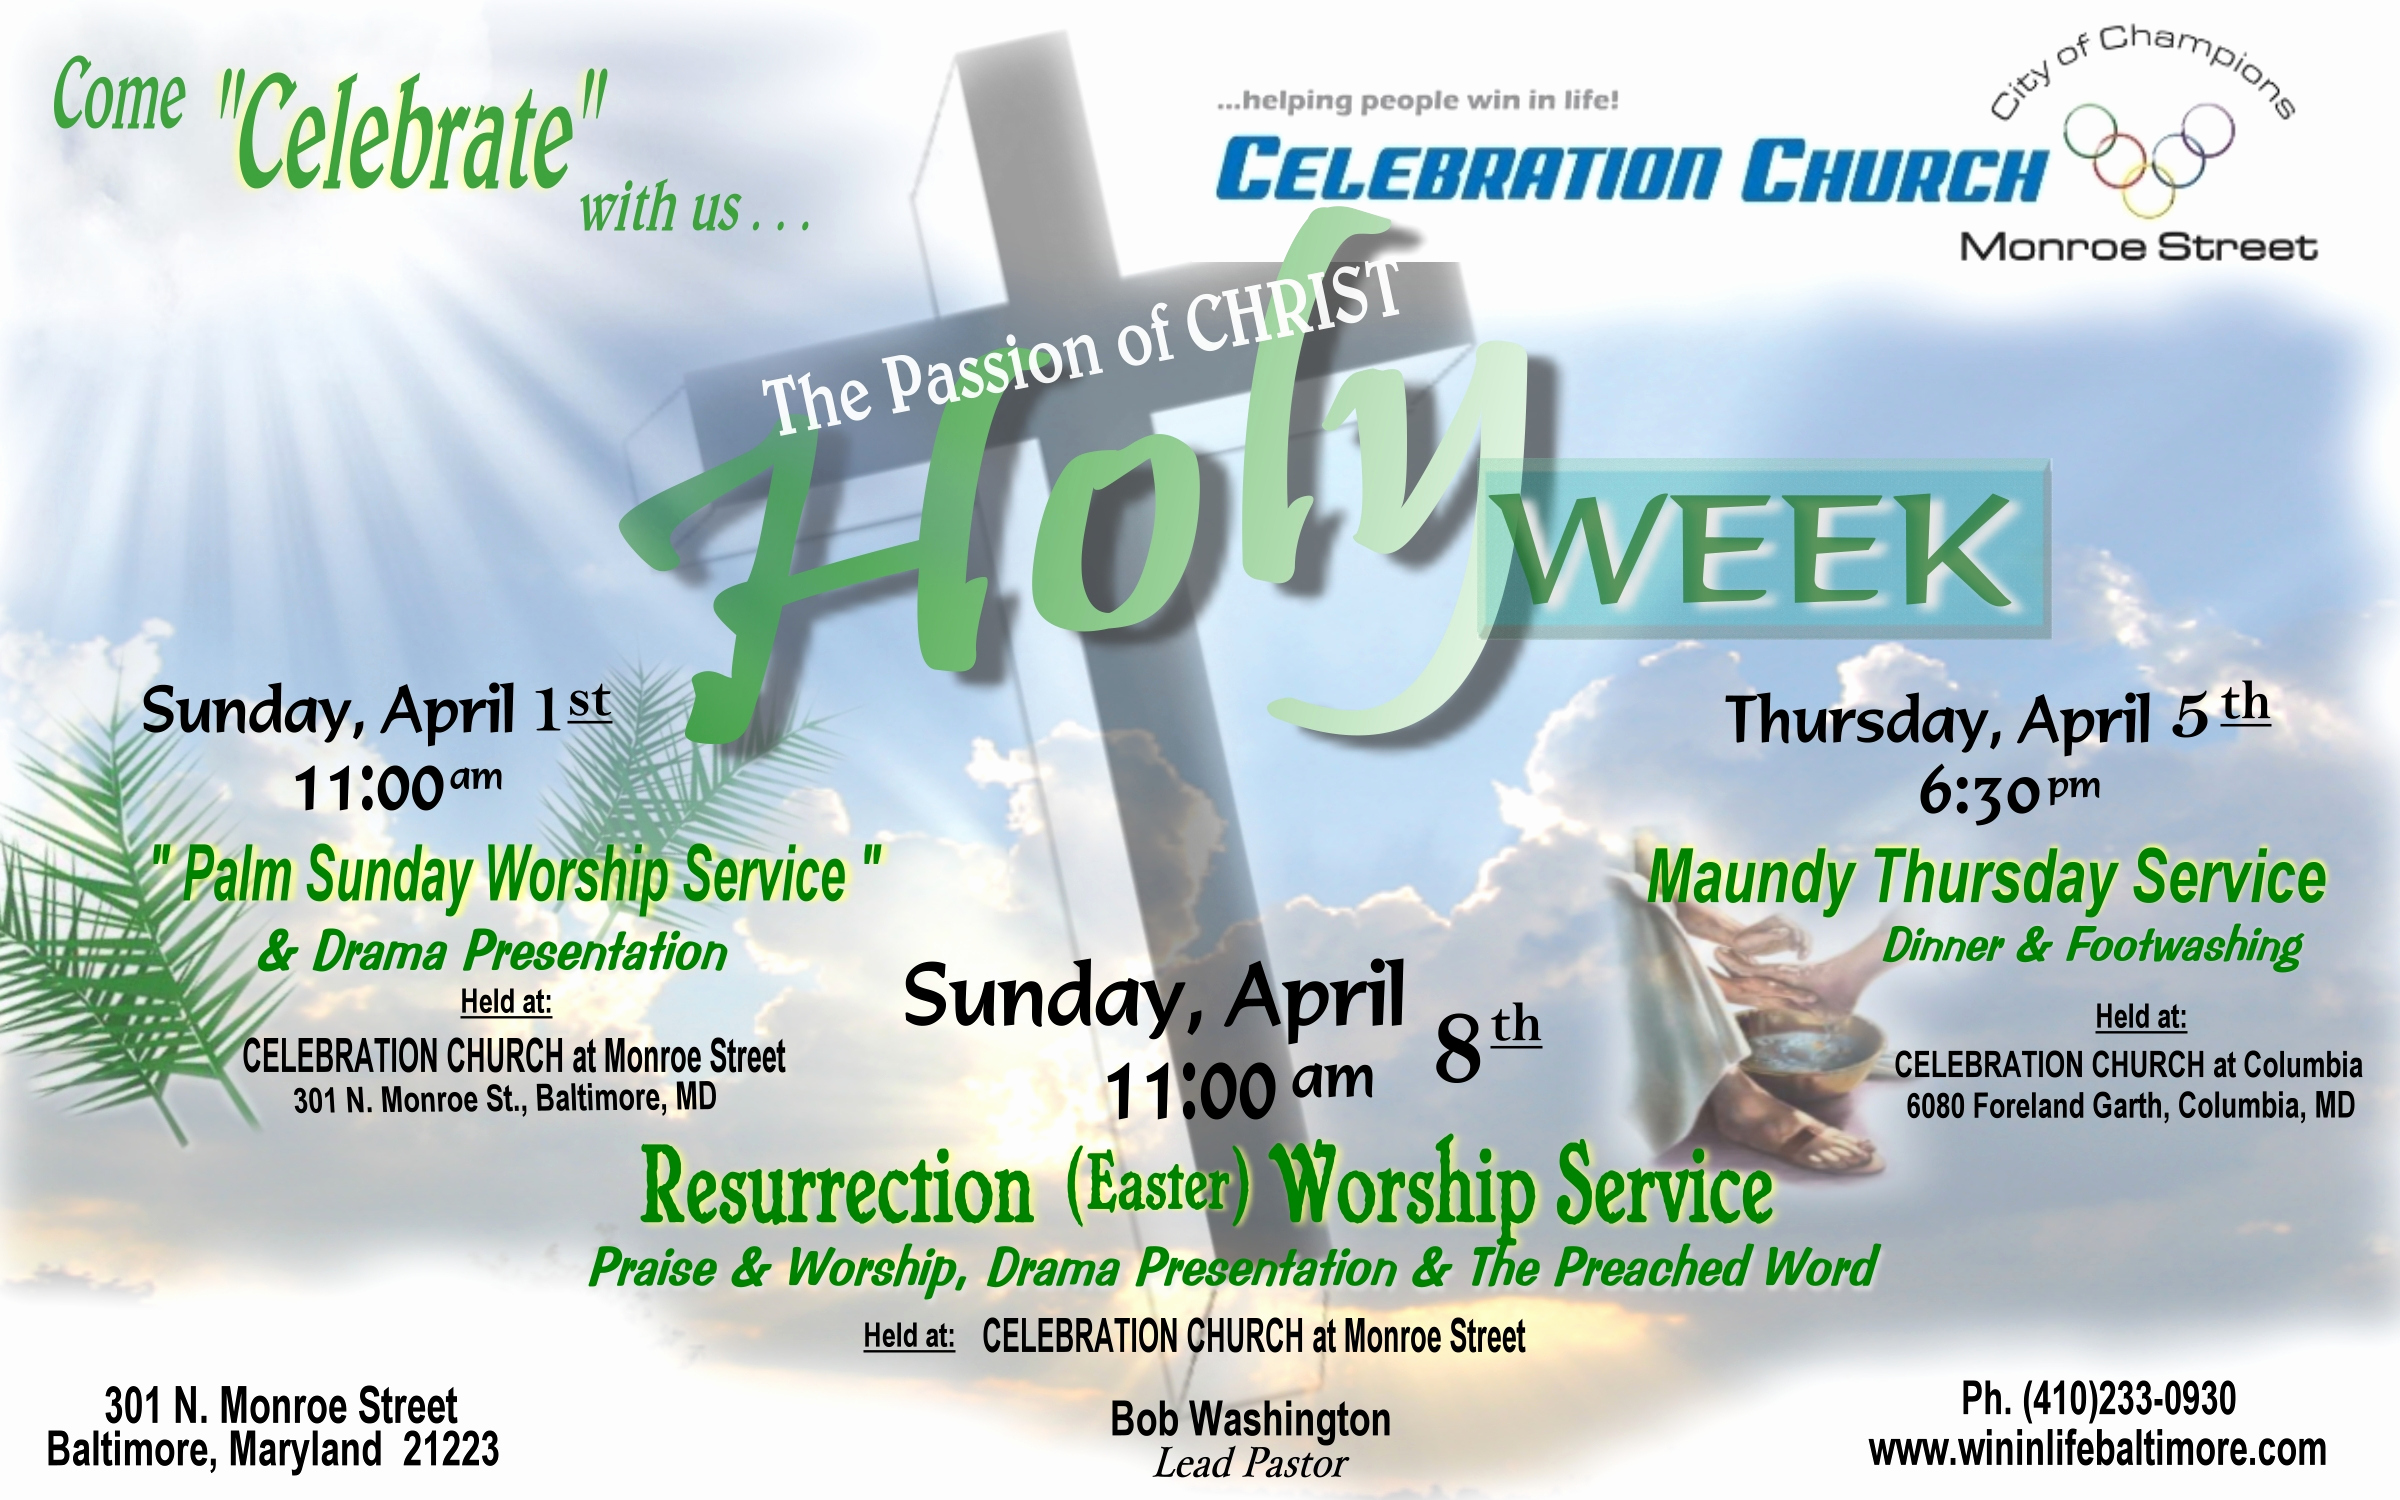 Invitation to Church Service Flyer Inspirational Celebration Church Monroe Street Baltimore Maryland